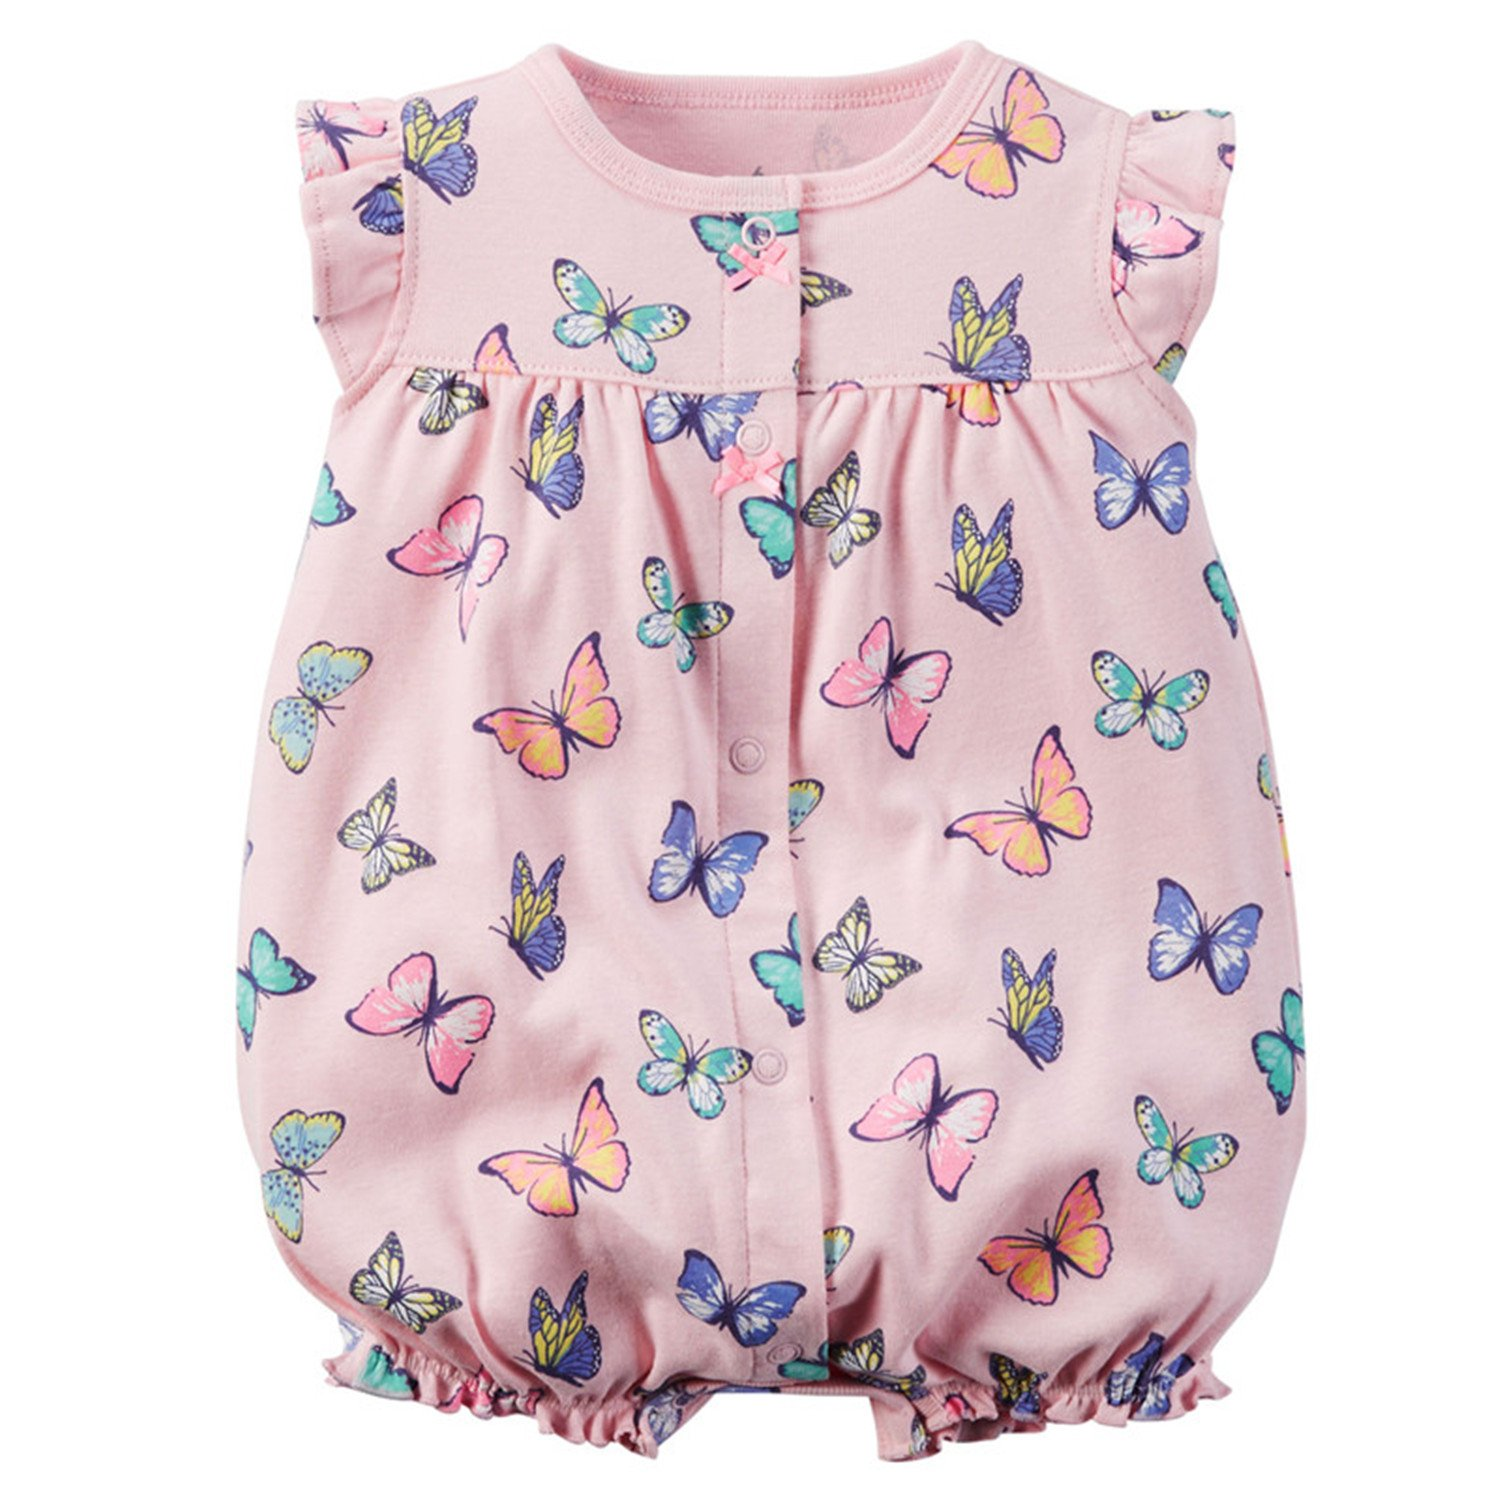 Susan1999 Baby Rompers Baby Girl Dress Cotton Newborn Baby Infant Jumpsuits Kids Clothes